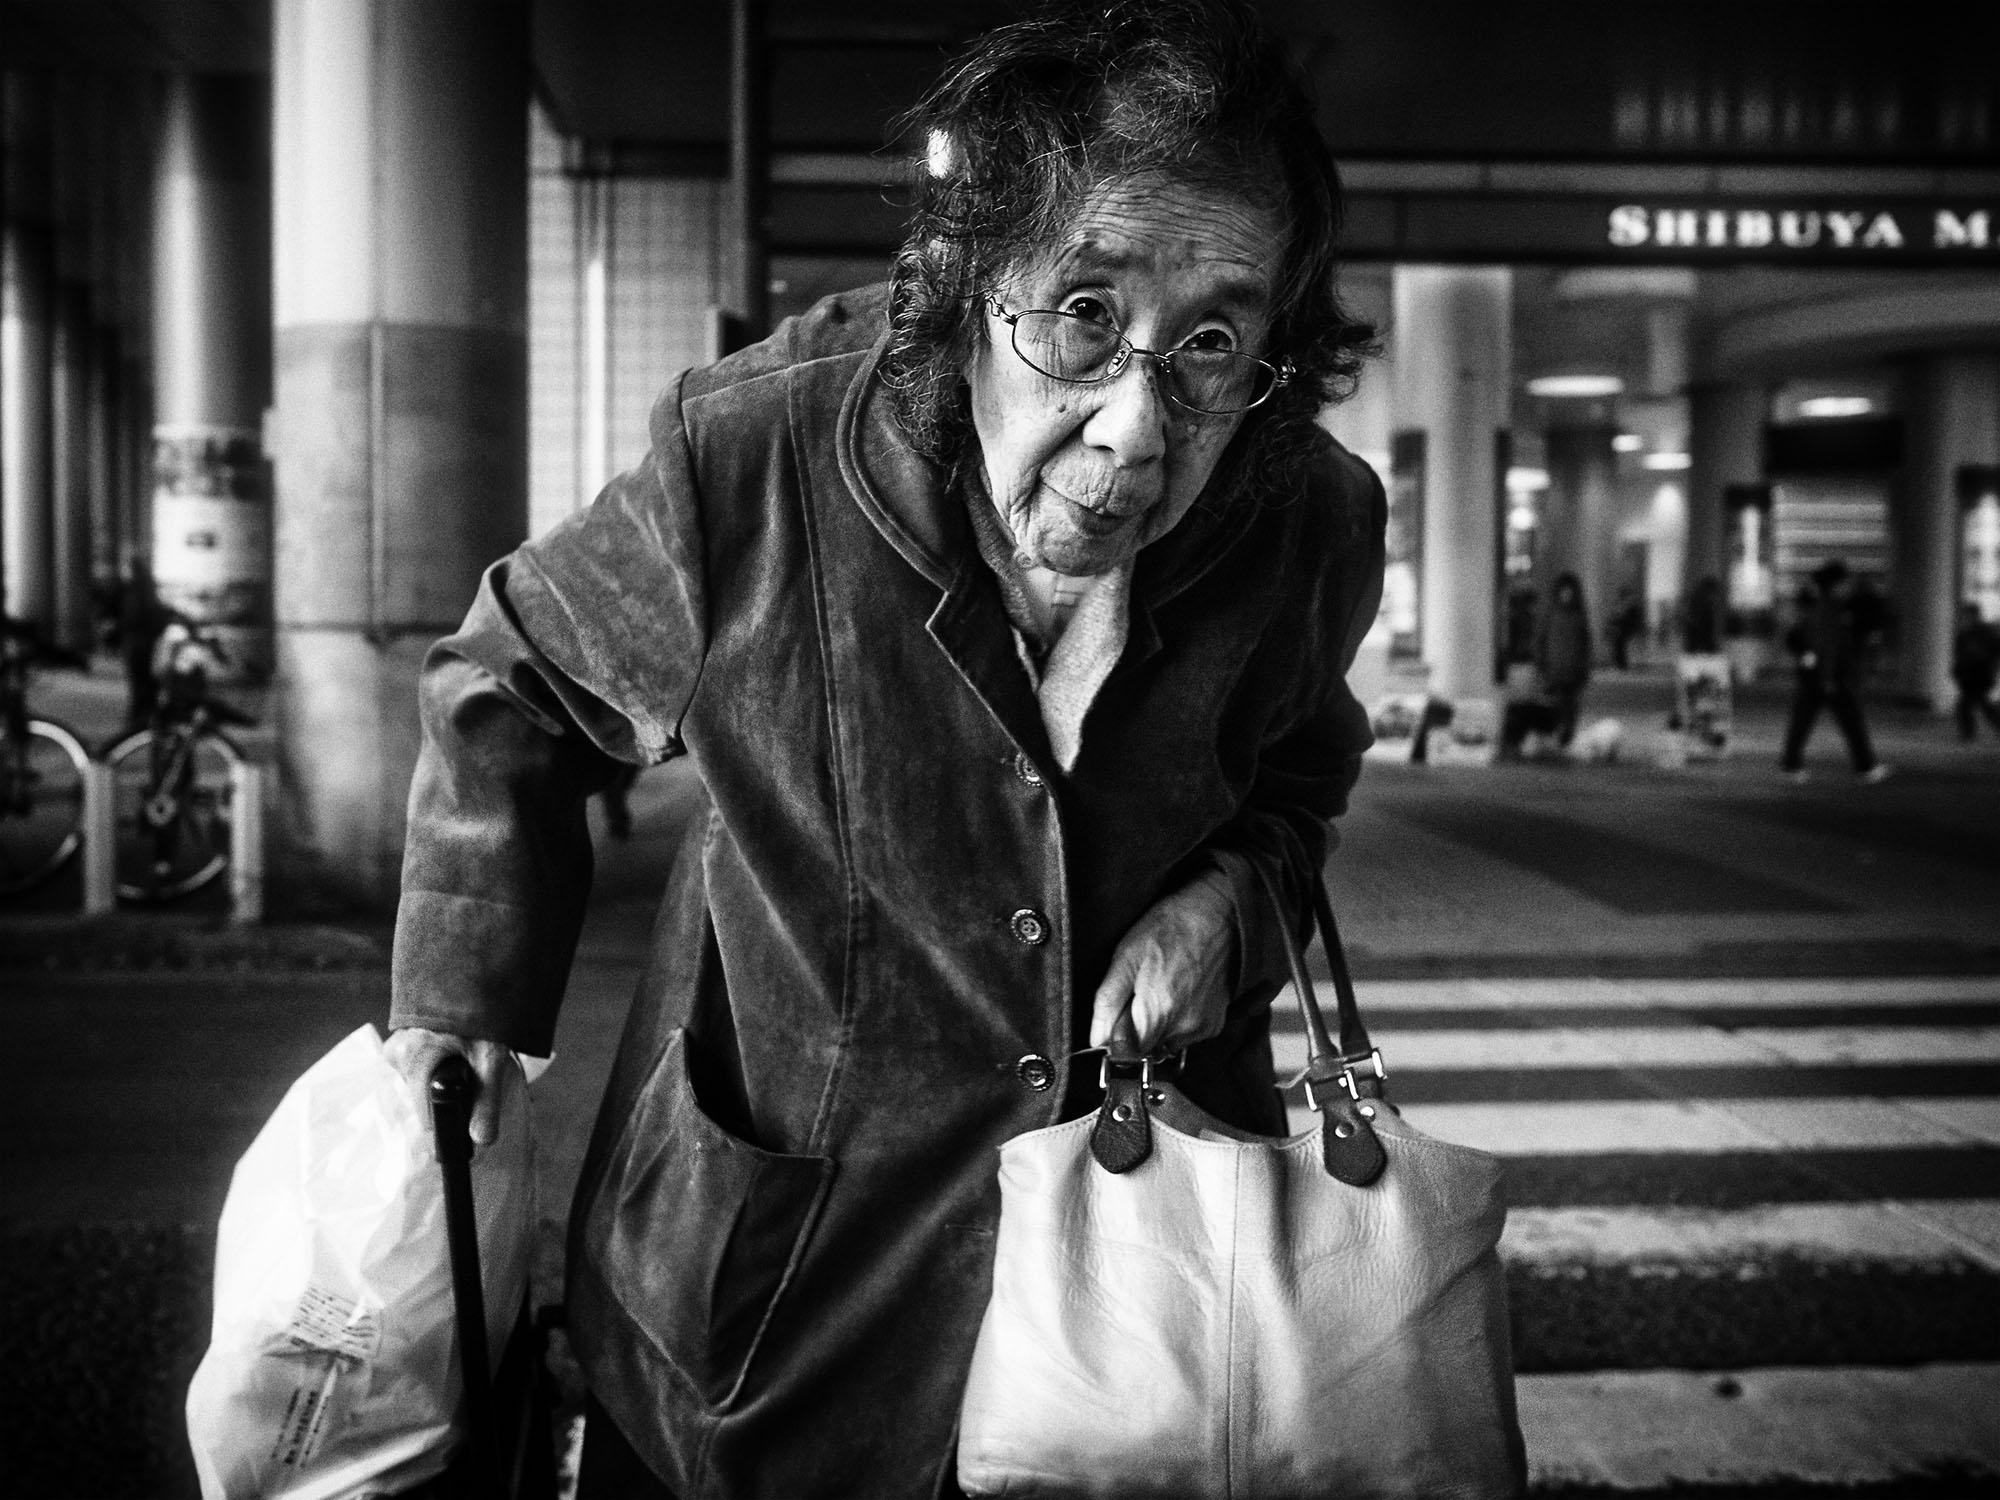 street photography  Street Photography | World Photography Organisation